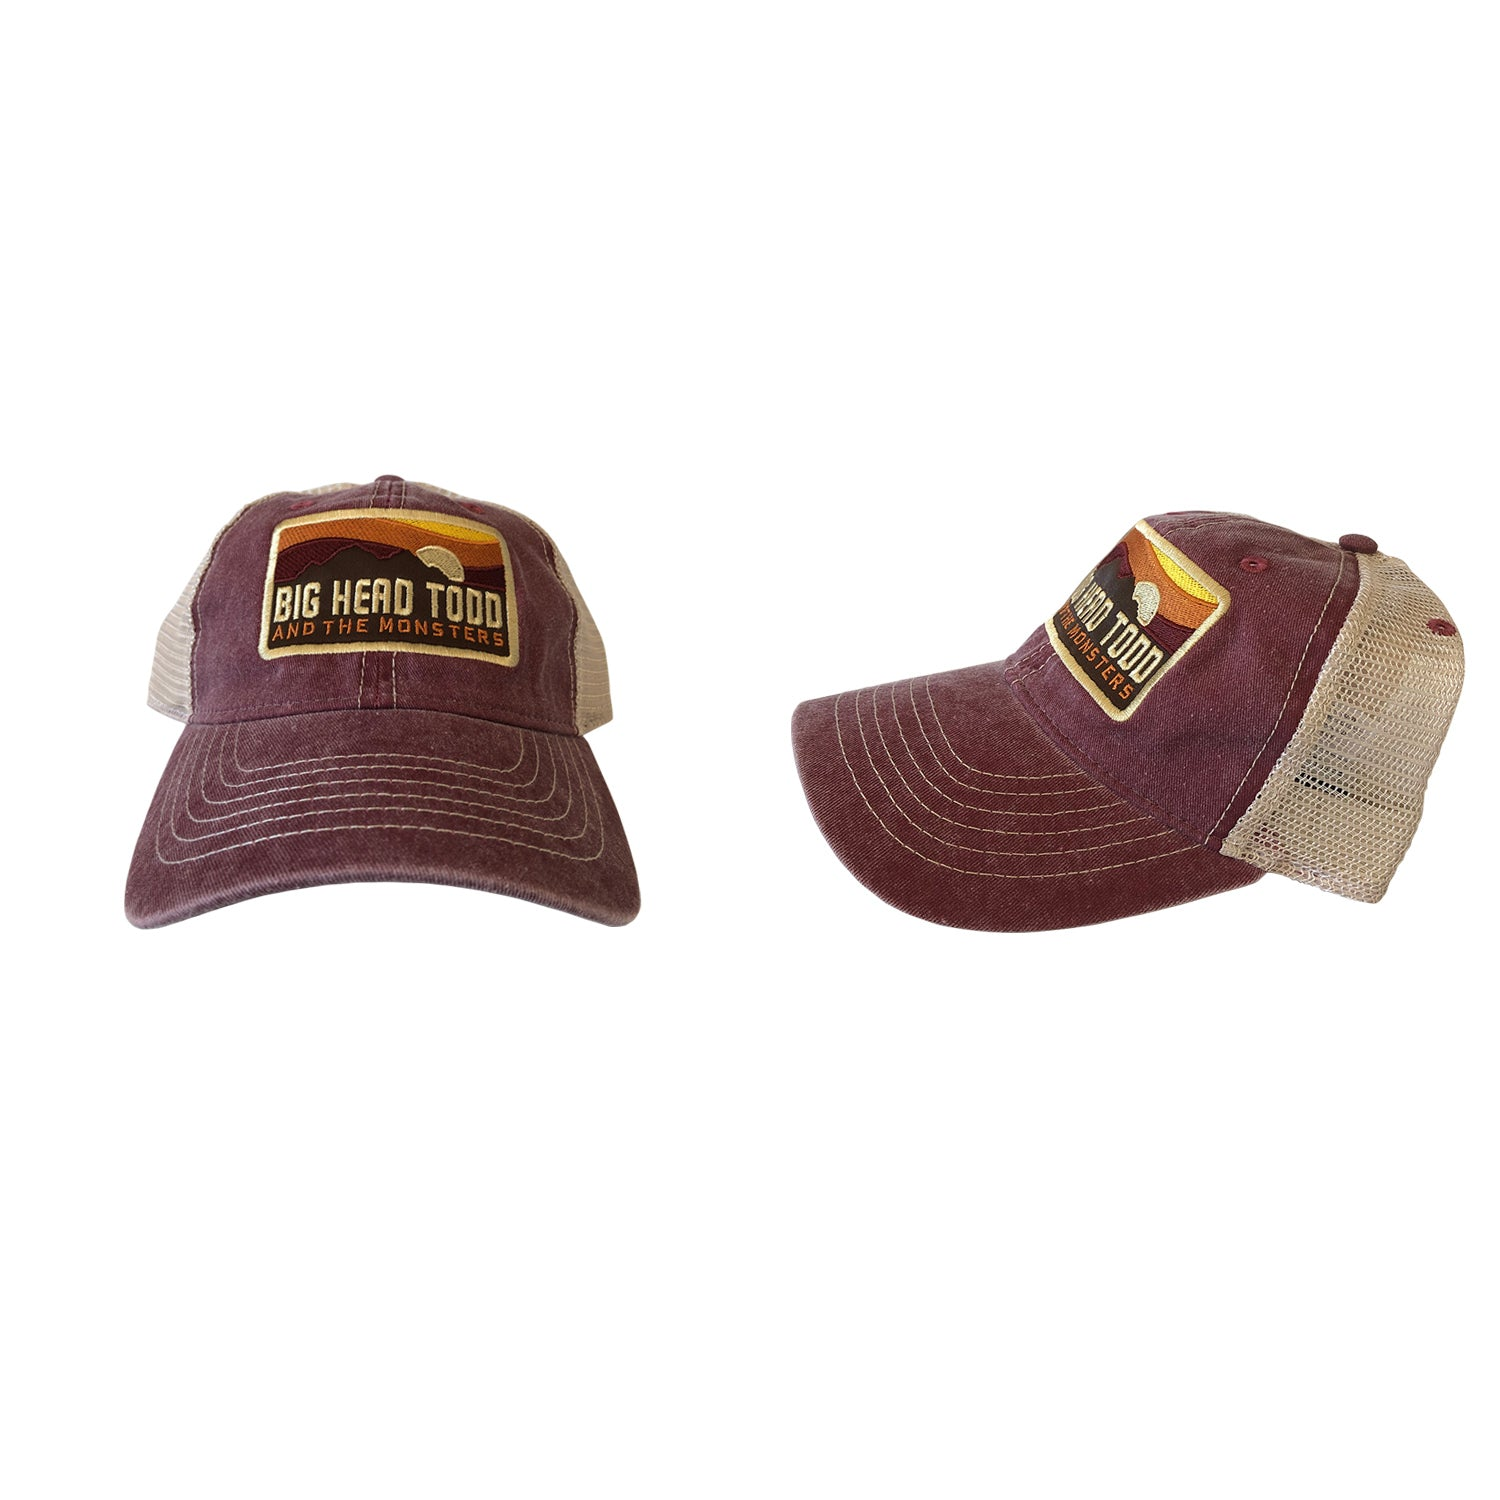 Sunset Mesh Cap - 2 Color Options